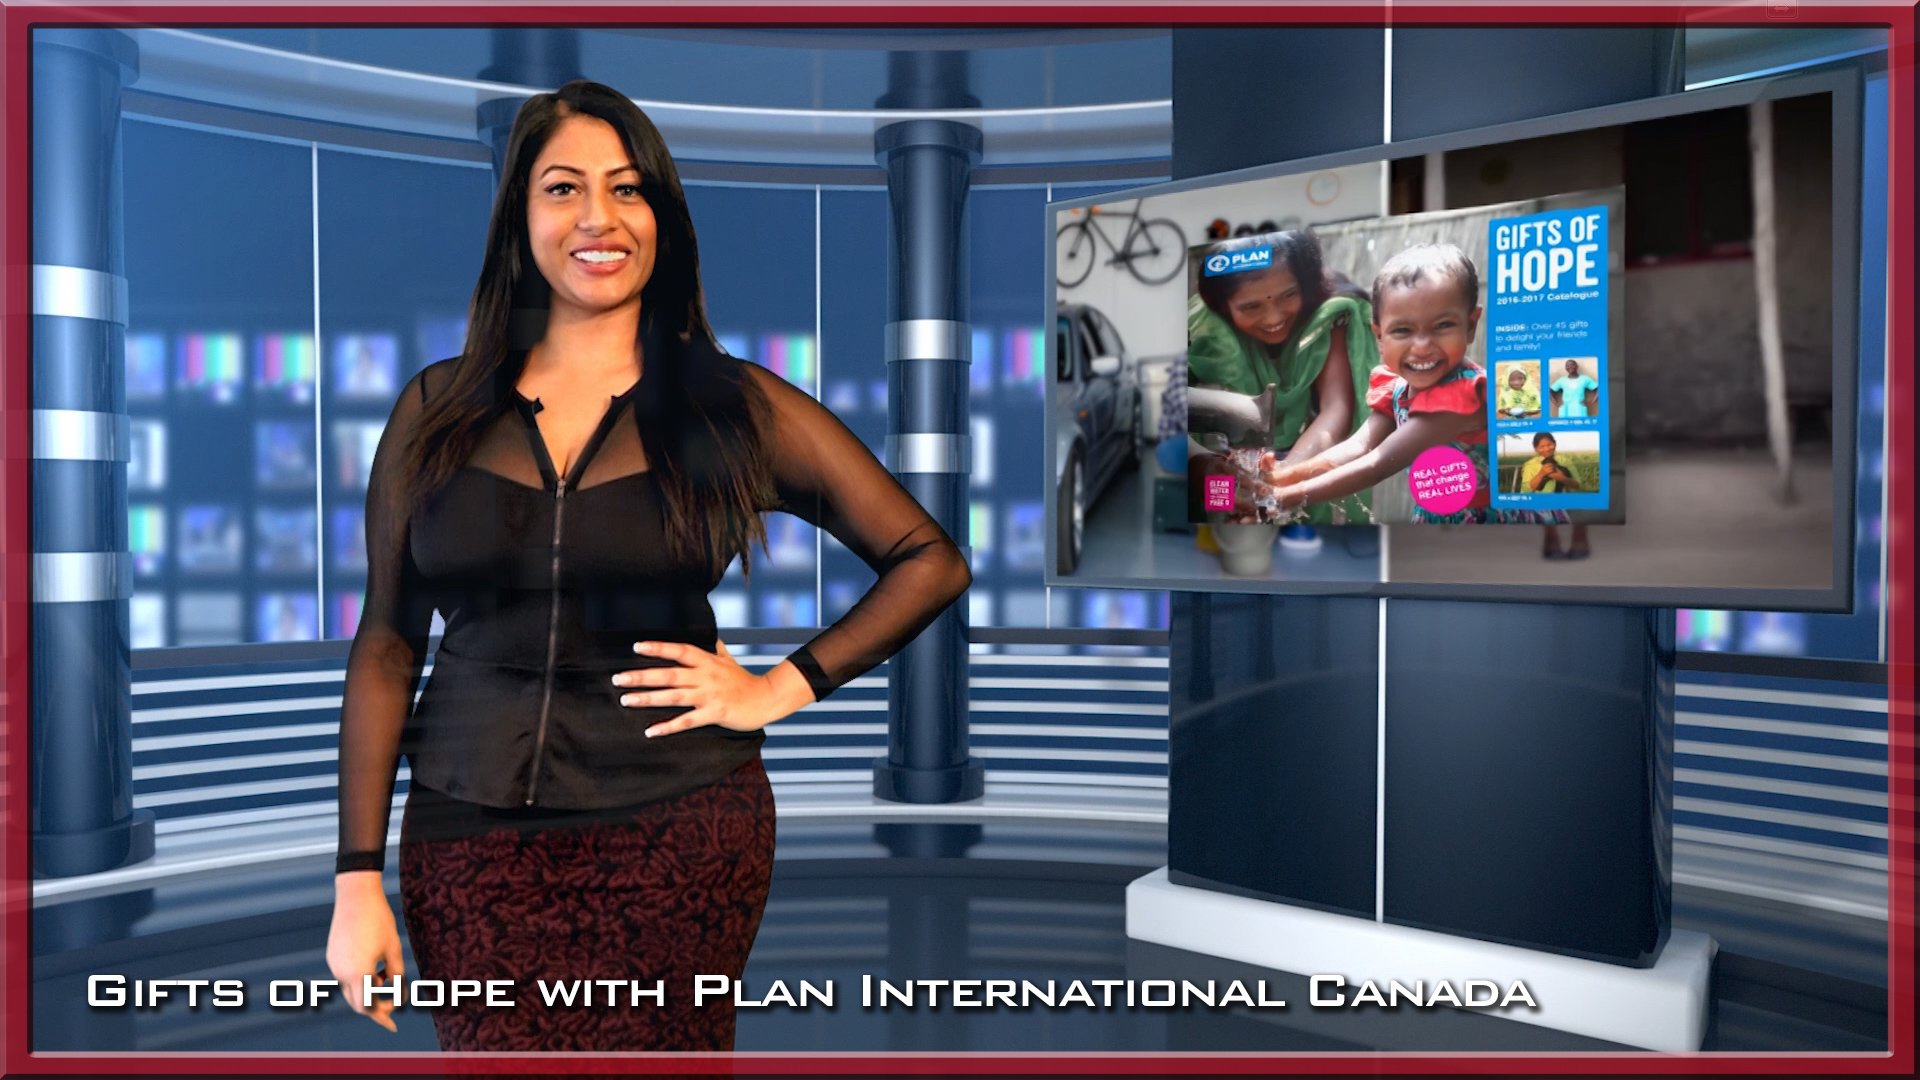 Gifts of Hope with Plan International Canada